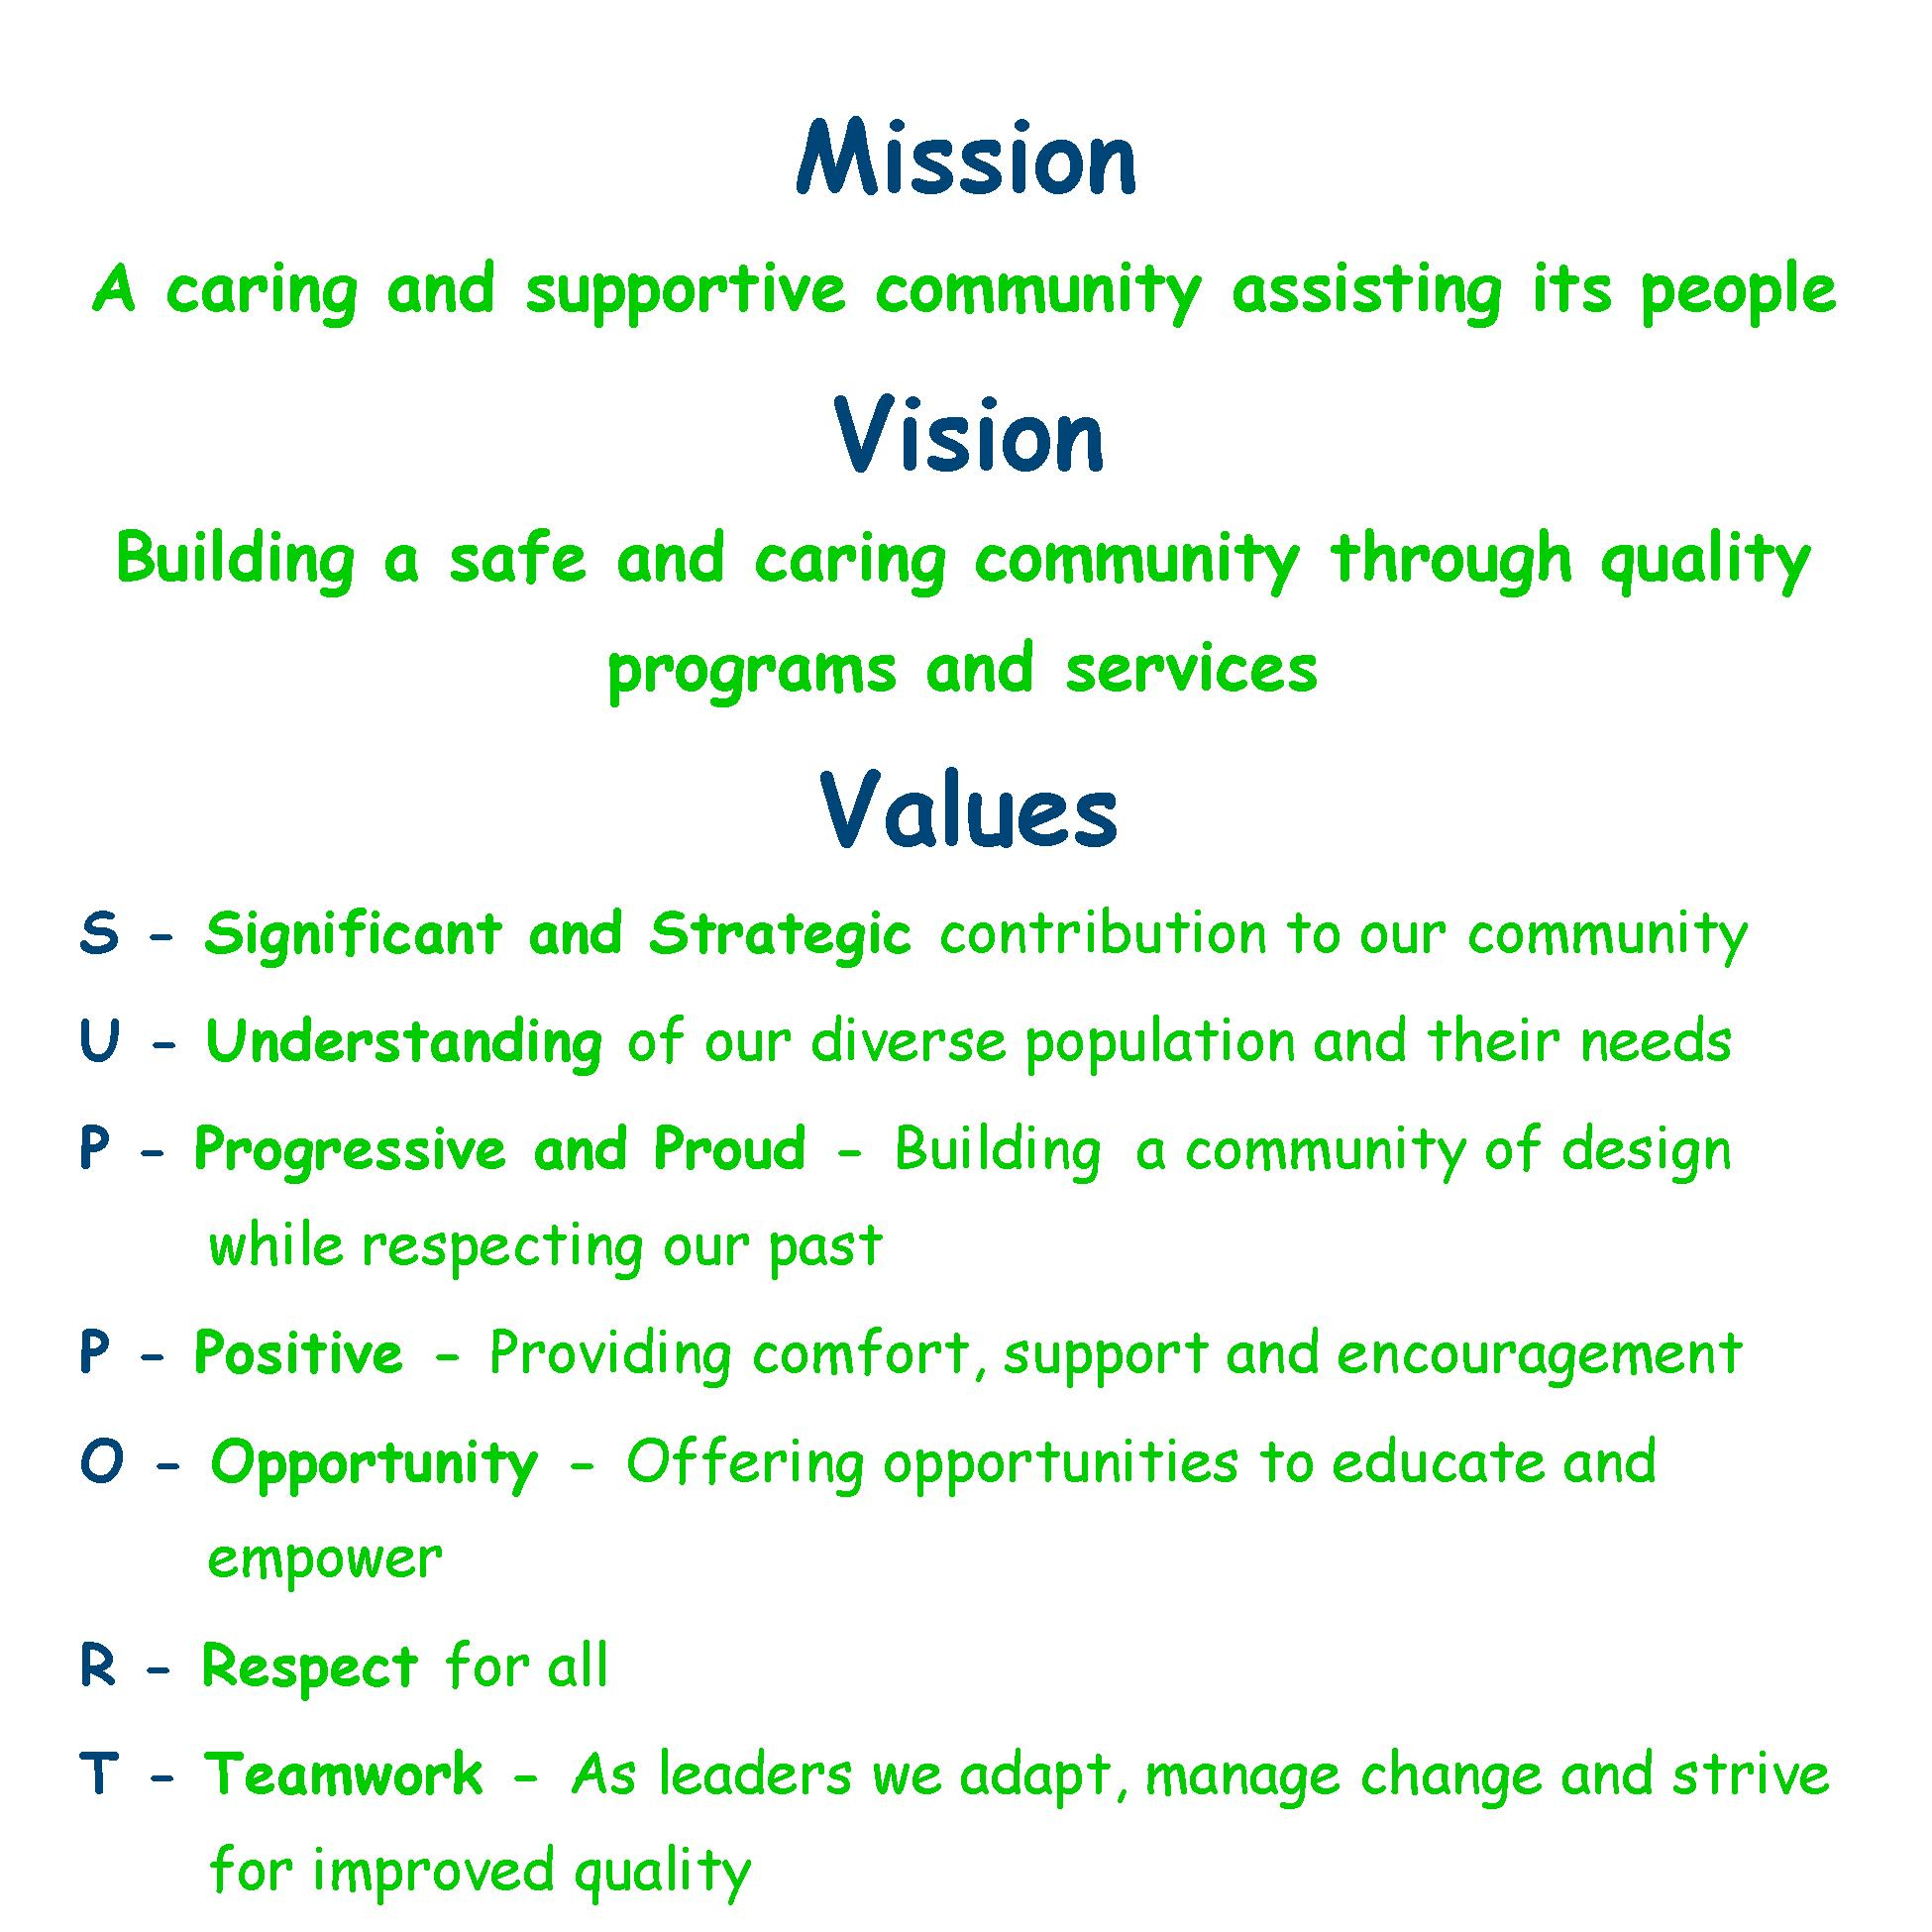 Mission, Vision and Value Statements